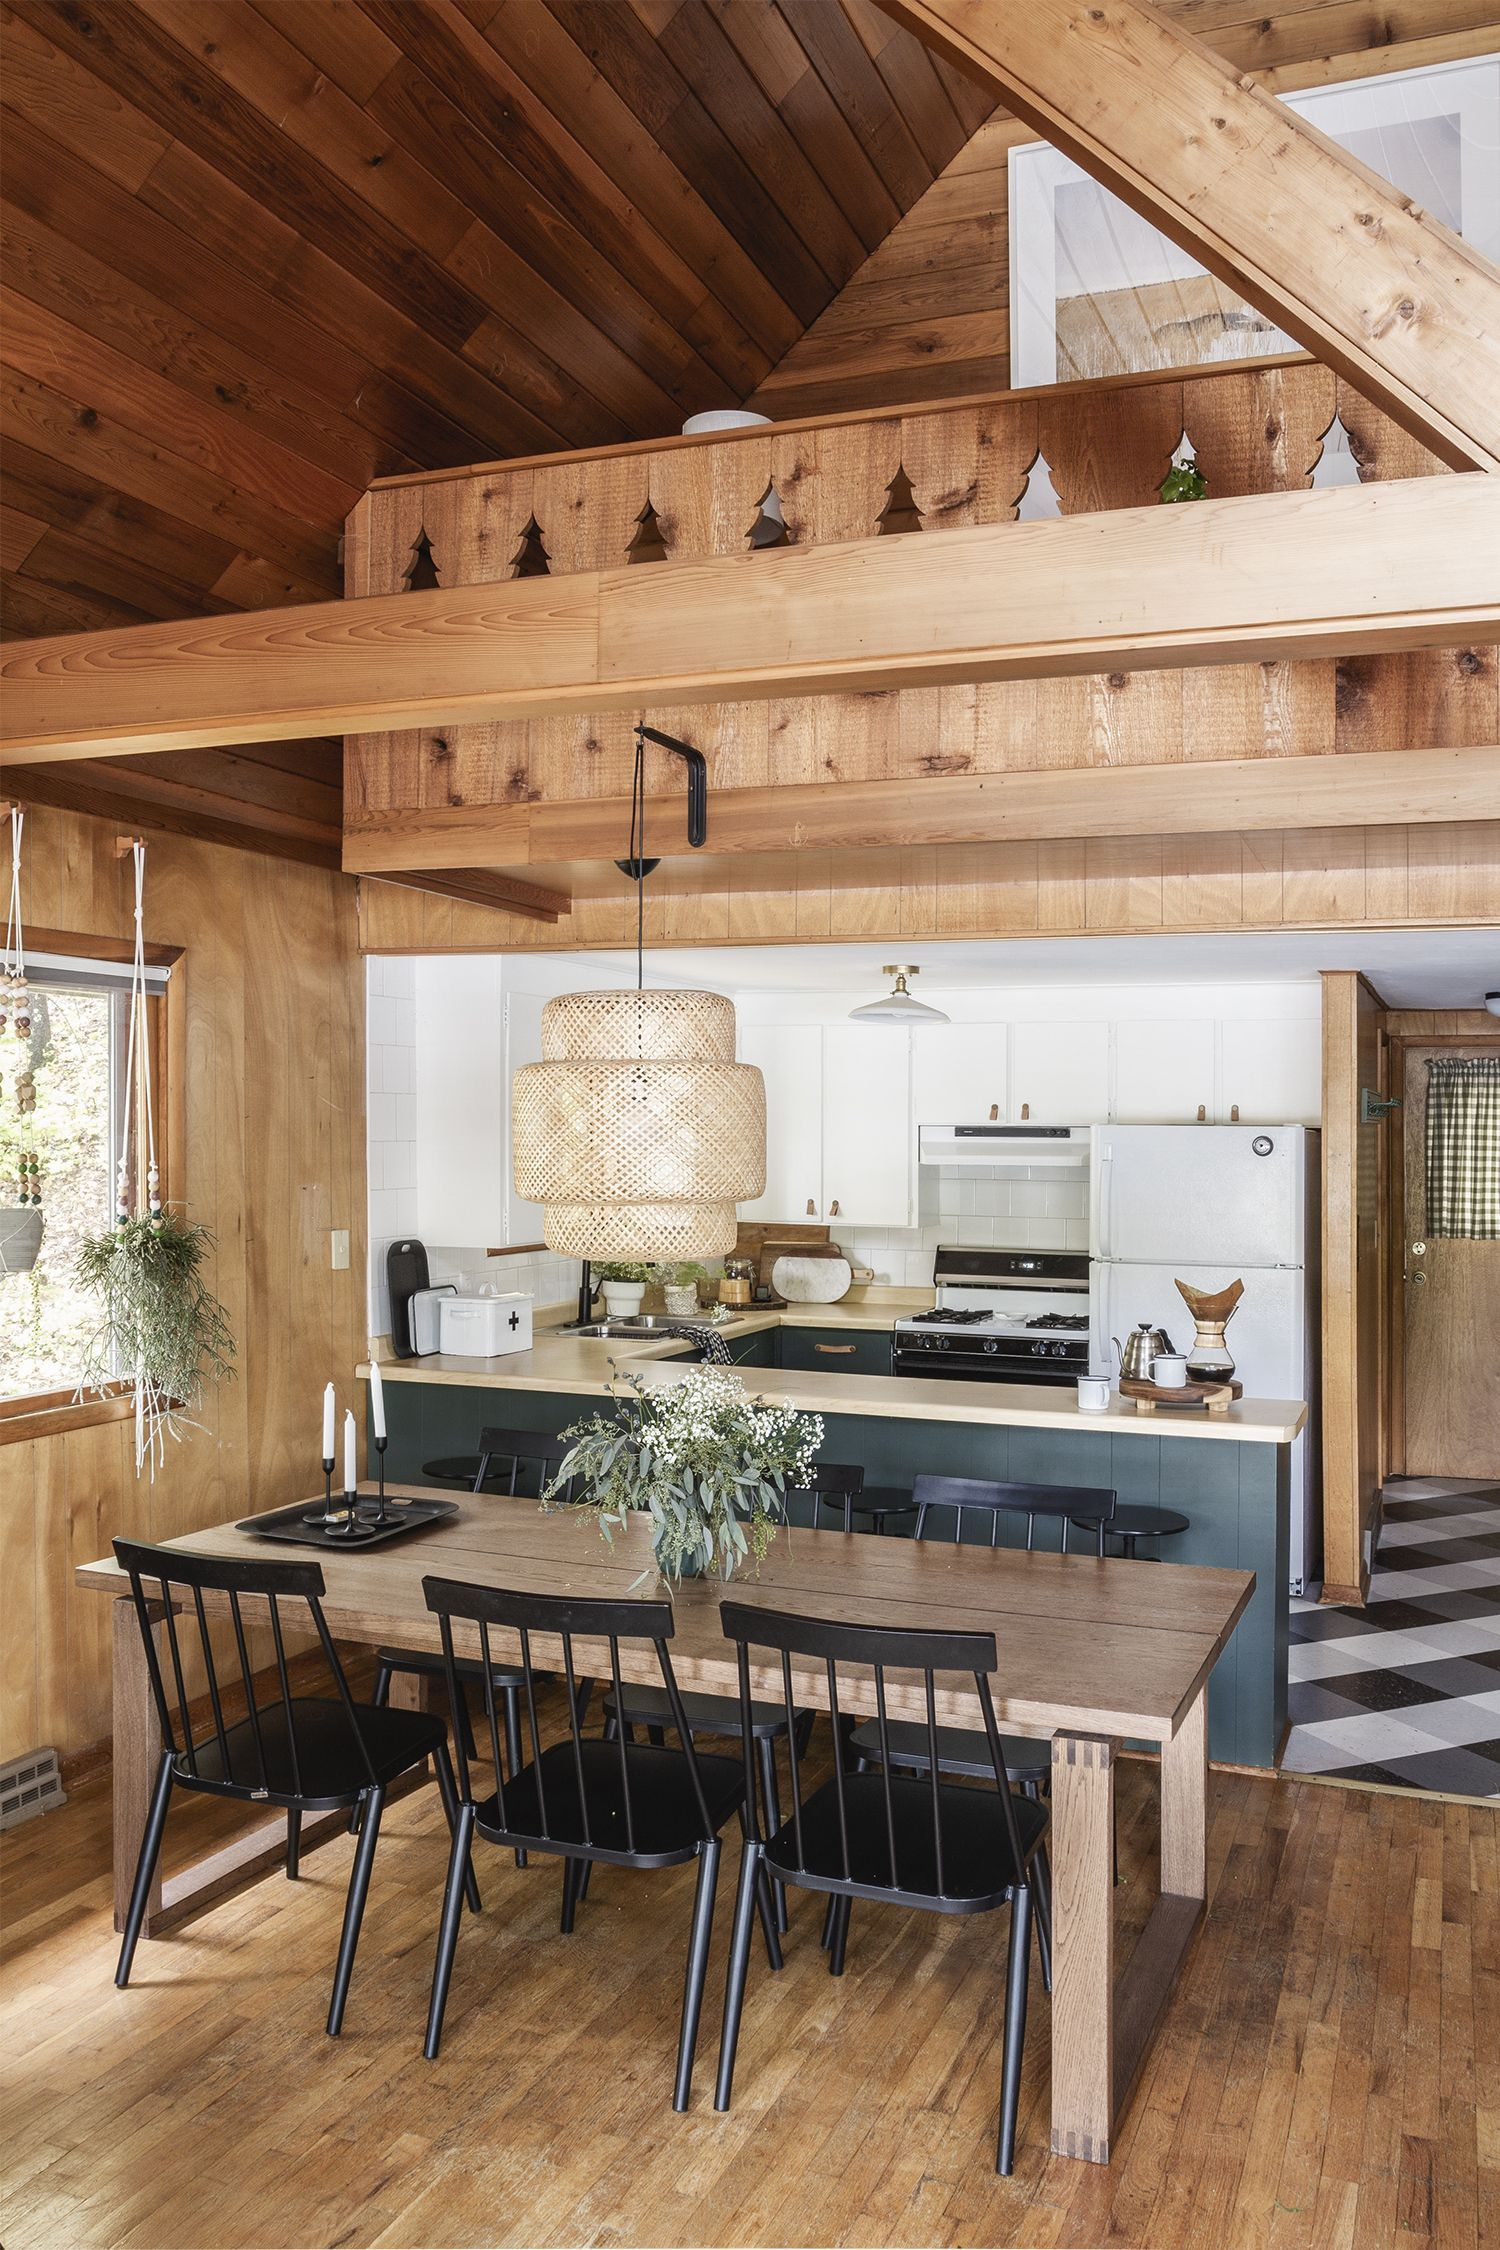 Pin On Rustic Kitchen Cabin